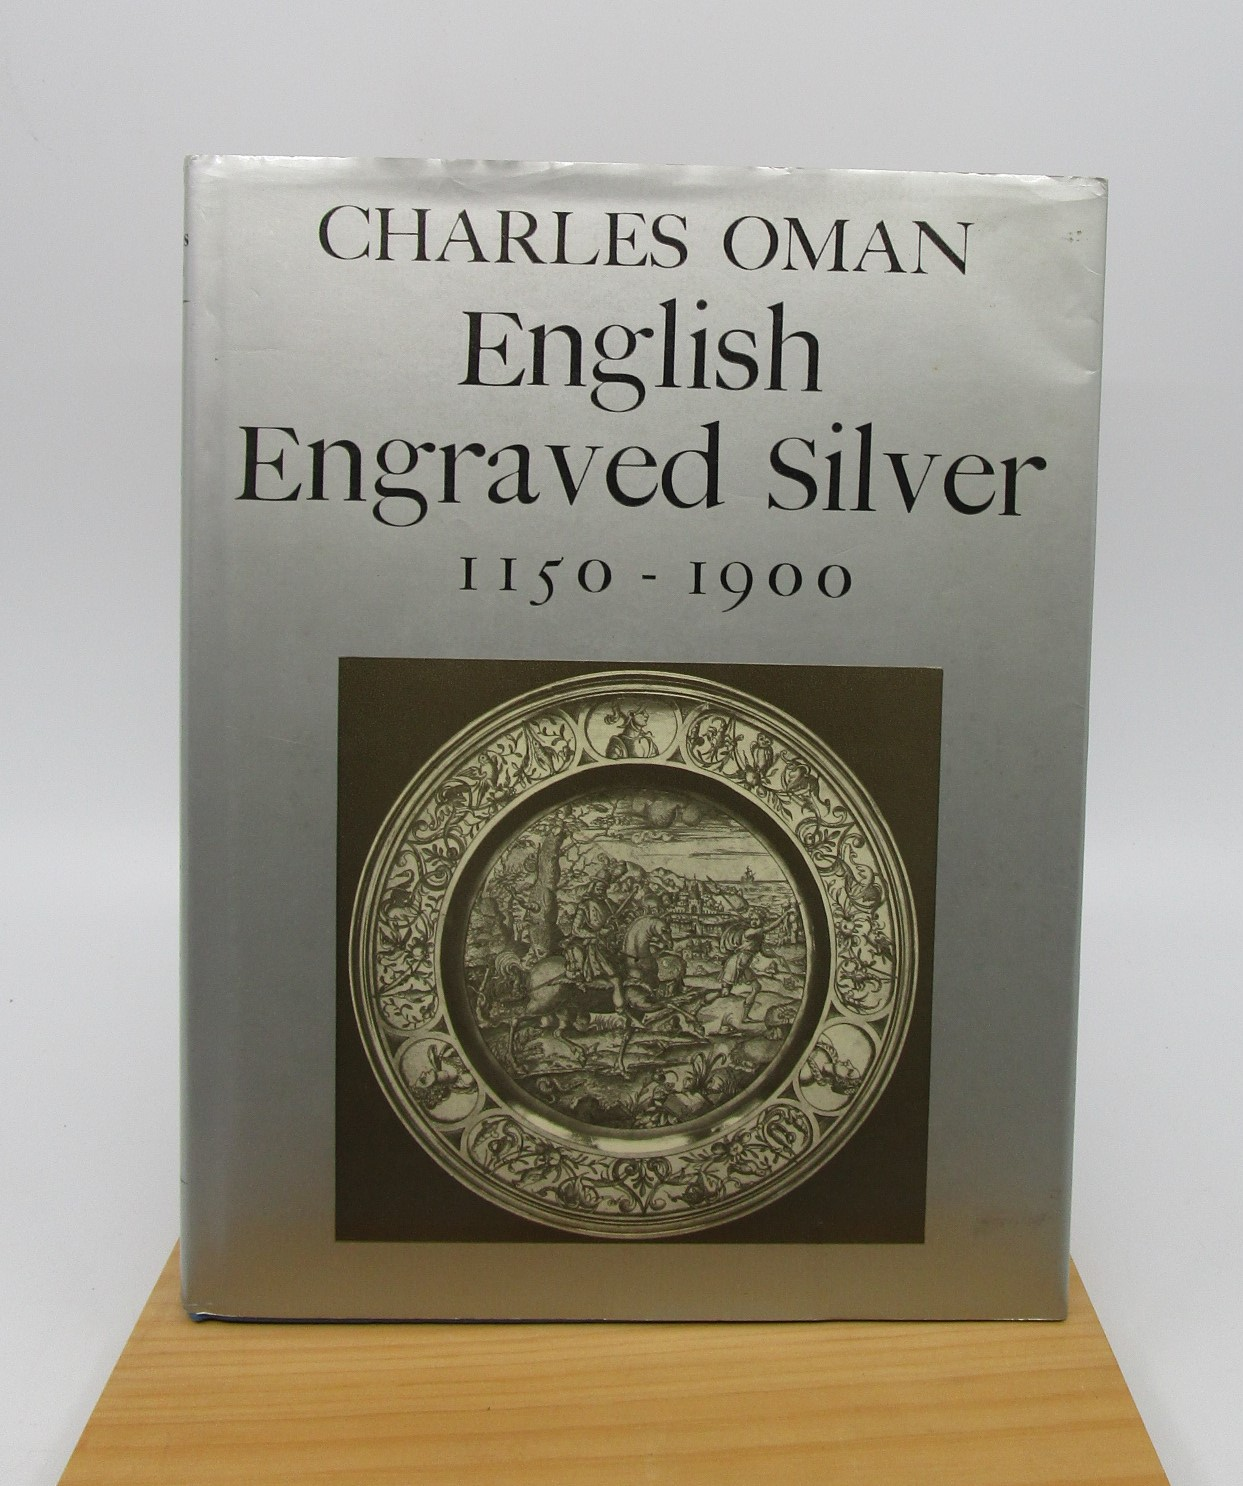 Image for English Engraved Silver, 1150-1900